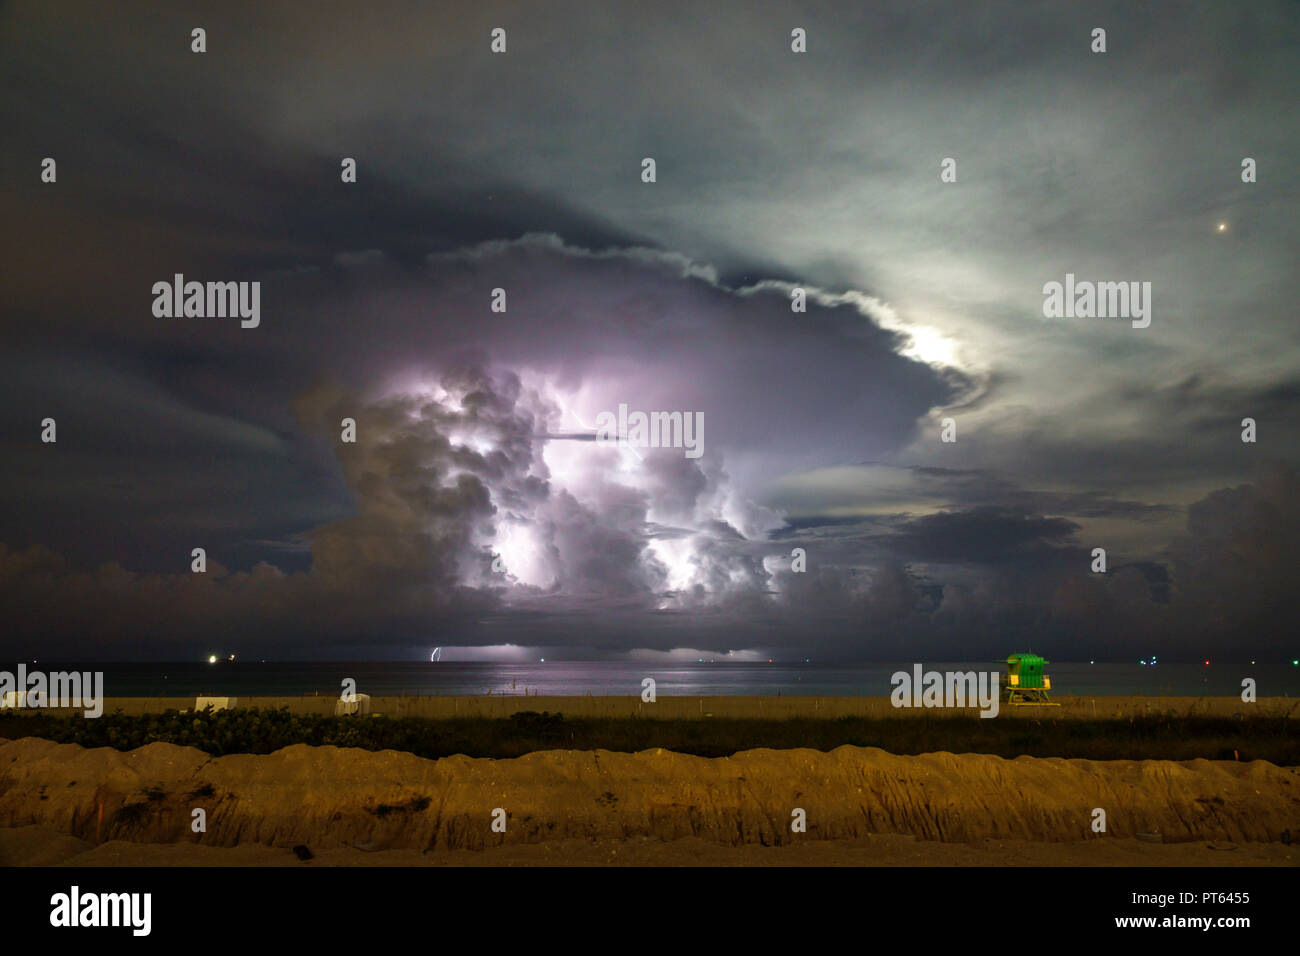 Miami Beach Florida Atlantic Ocean night weather thunderstorm storm lightning clouds - Stock Image